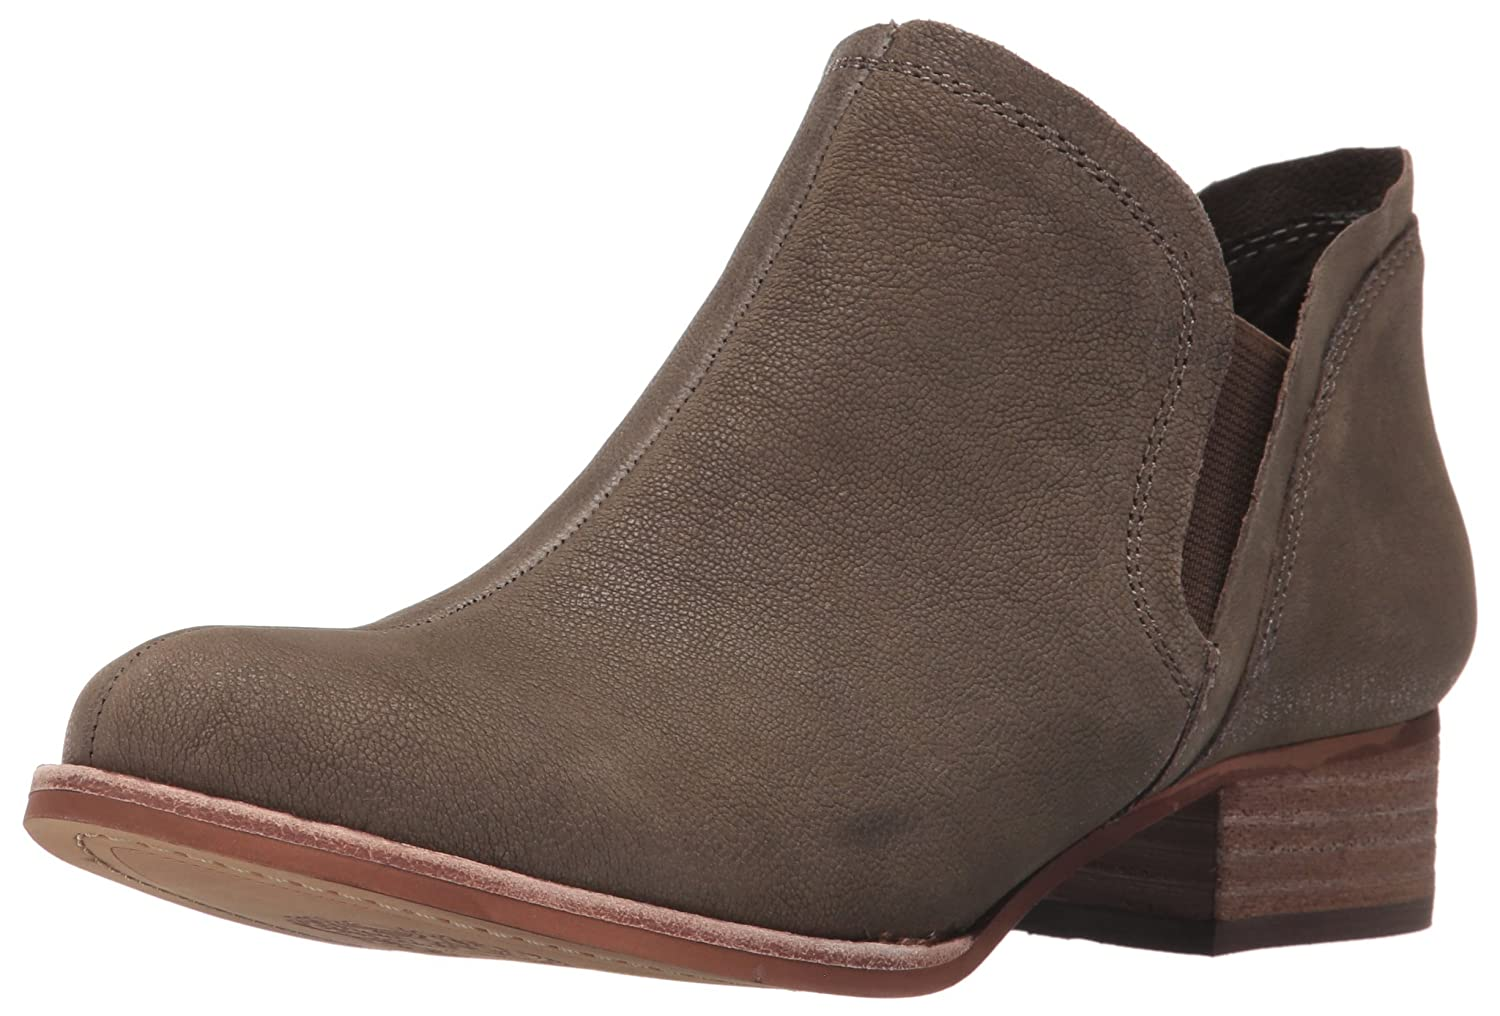 Vince Camuto Women's Carlal Ankle Bootie B01J6E2F1C 5.5 B(M) US|Forest Grey